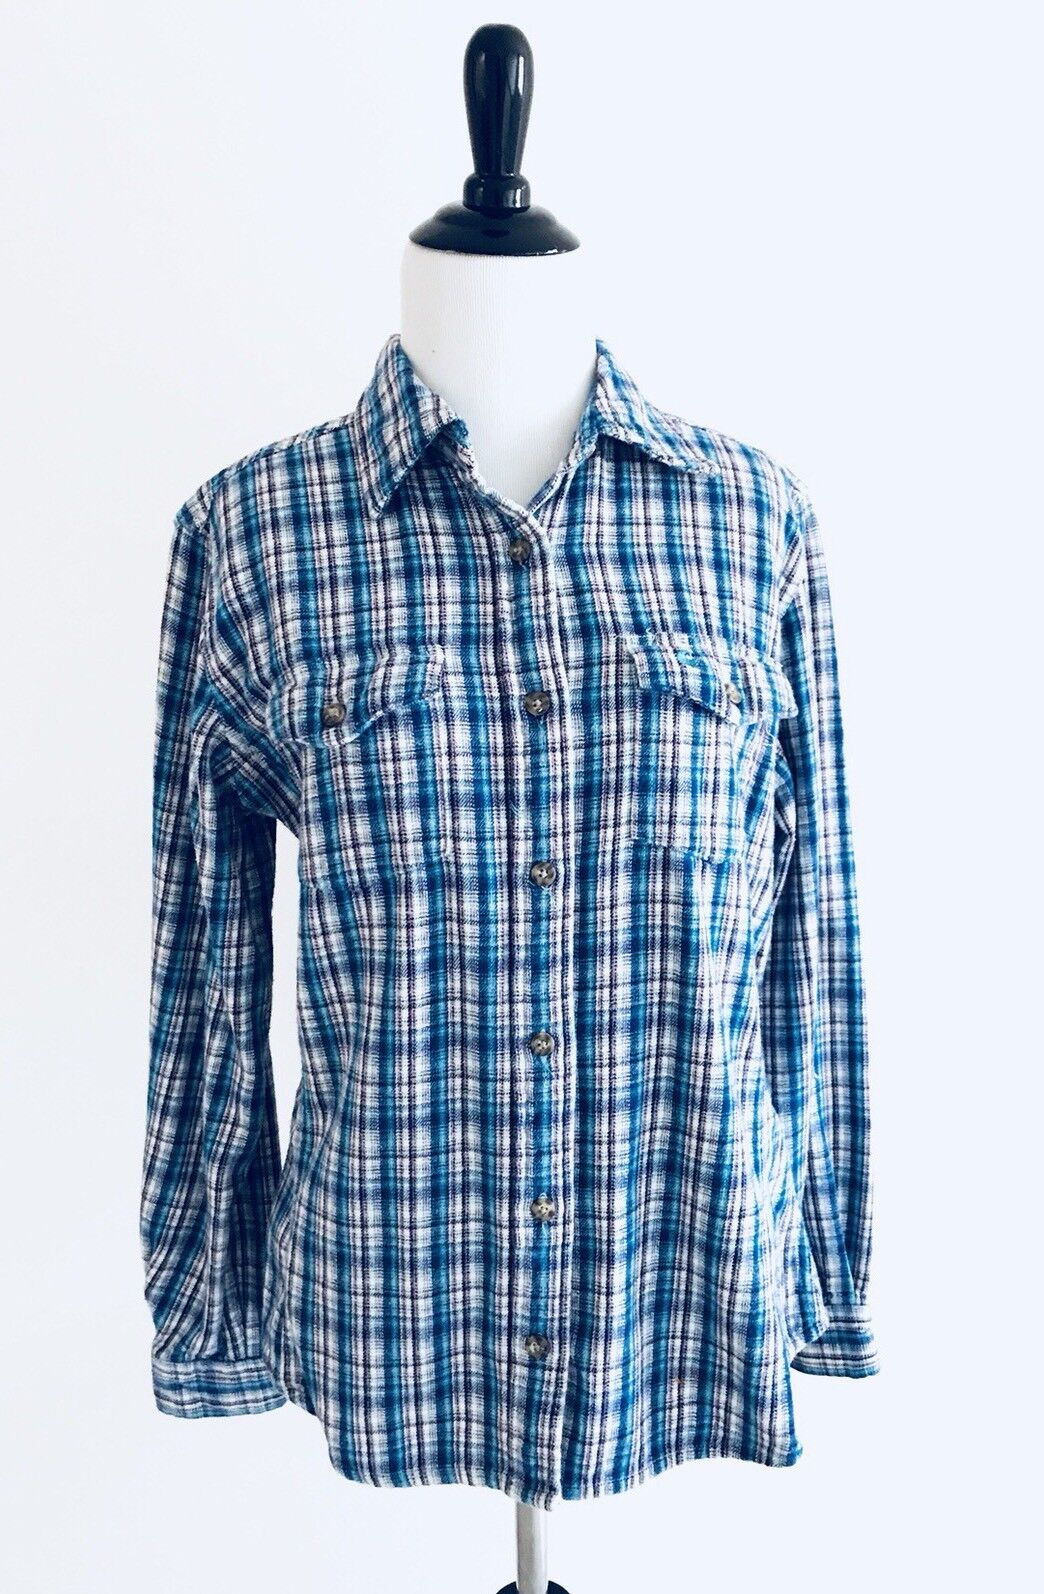 Carhartt G3 damen Button Down Shirt Größe S (4-6) Blau Pinstripe Cotton Collar